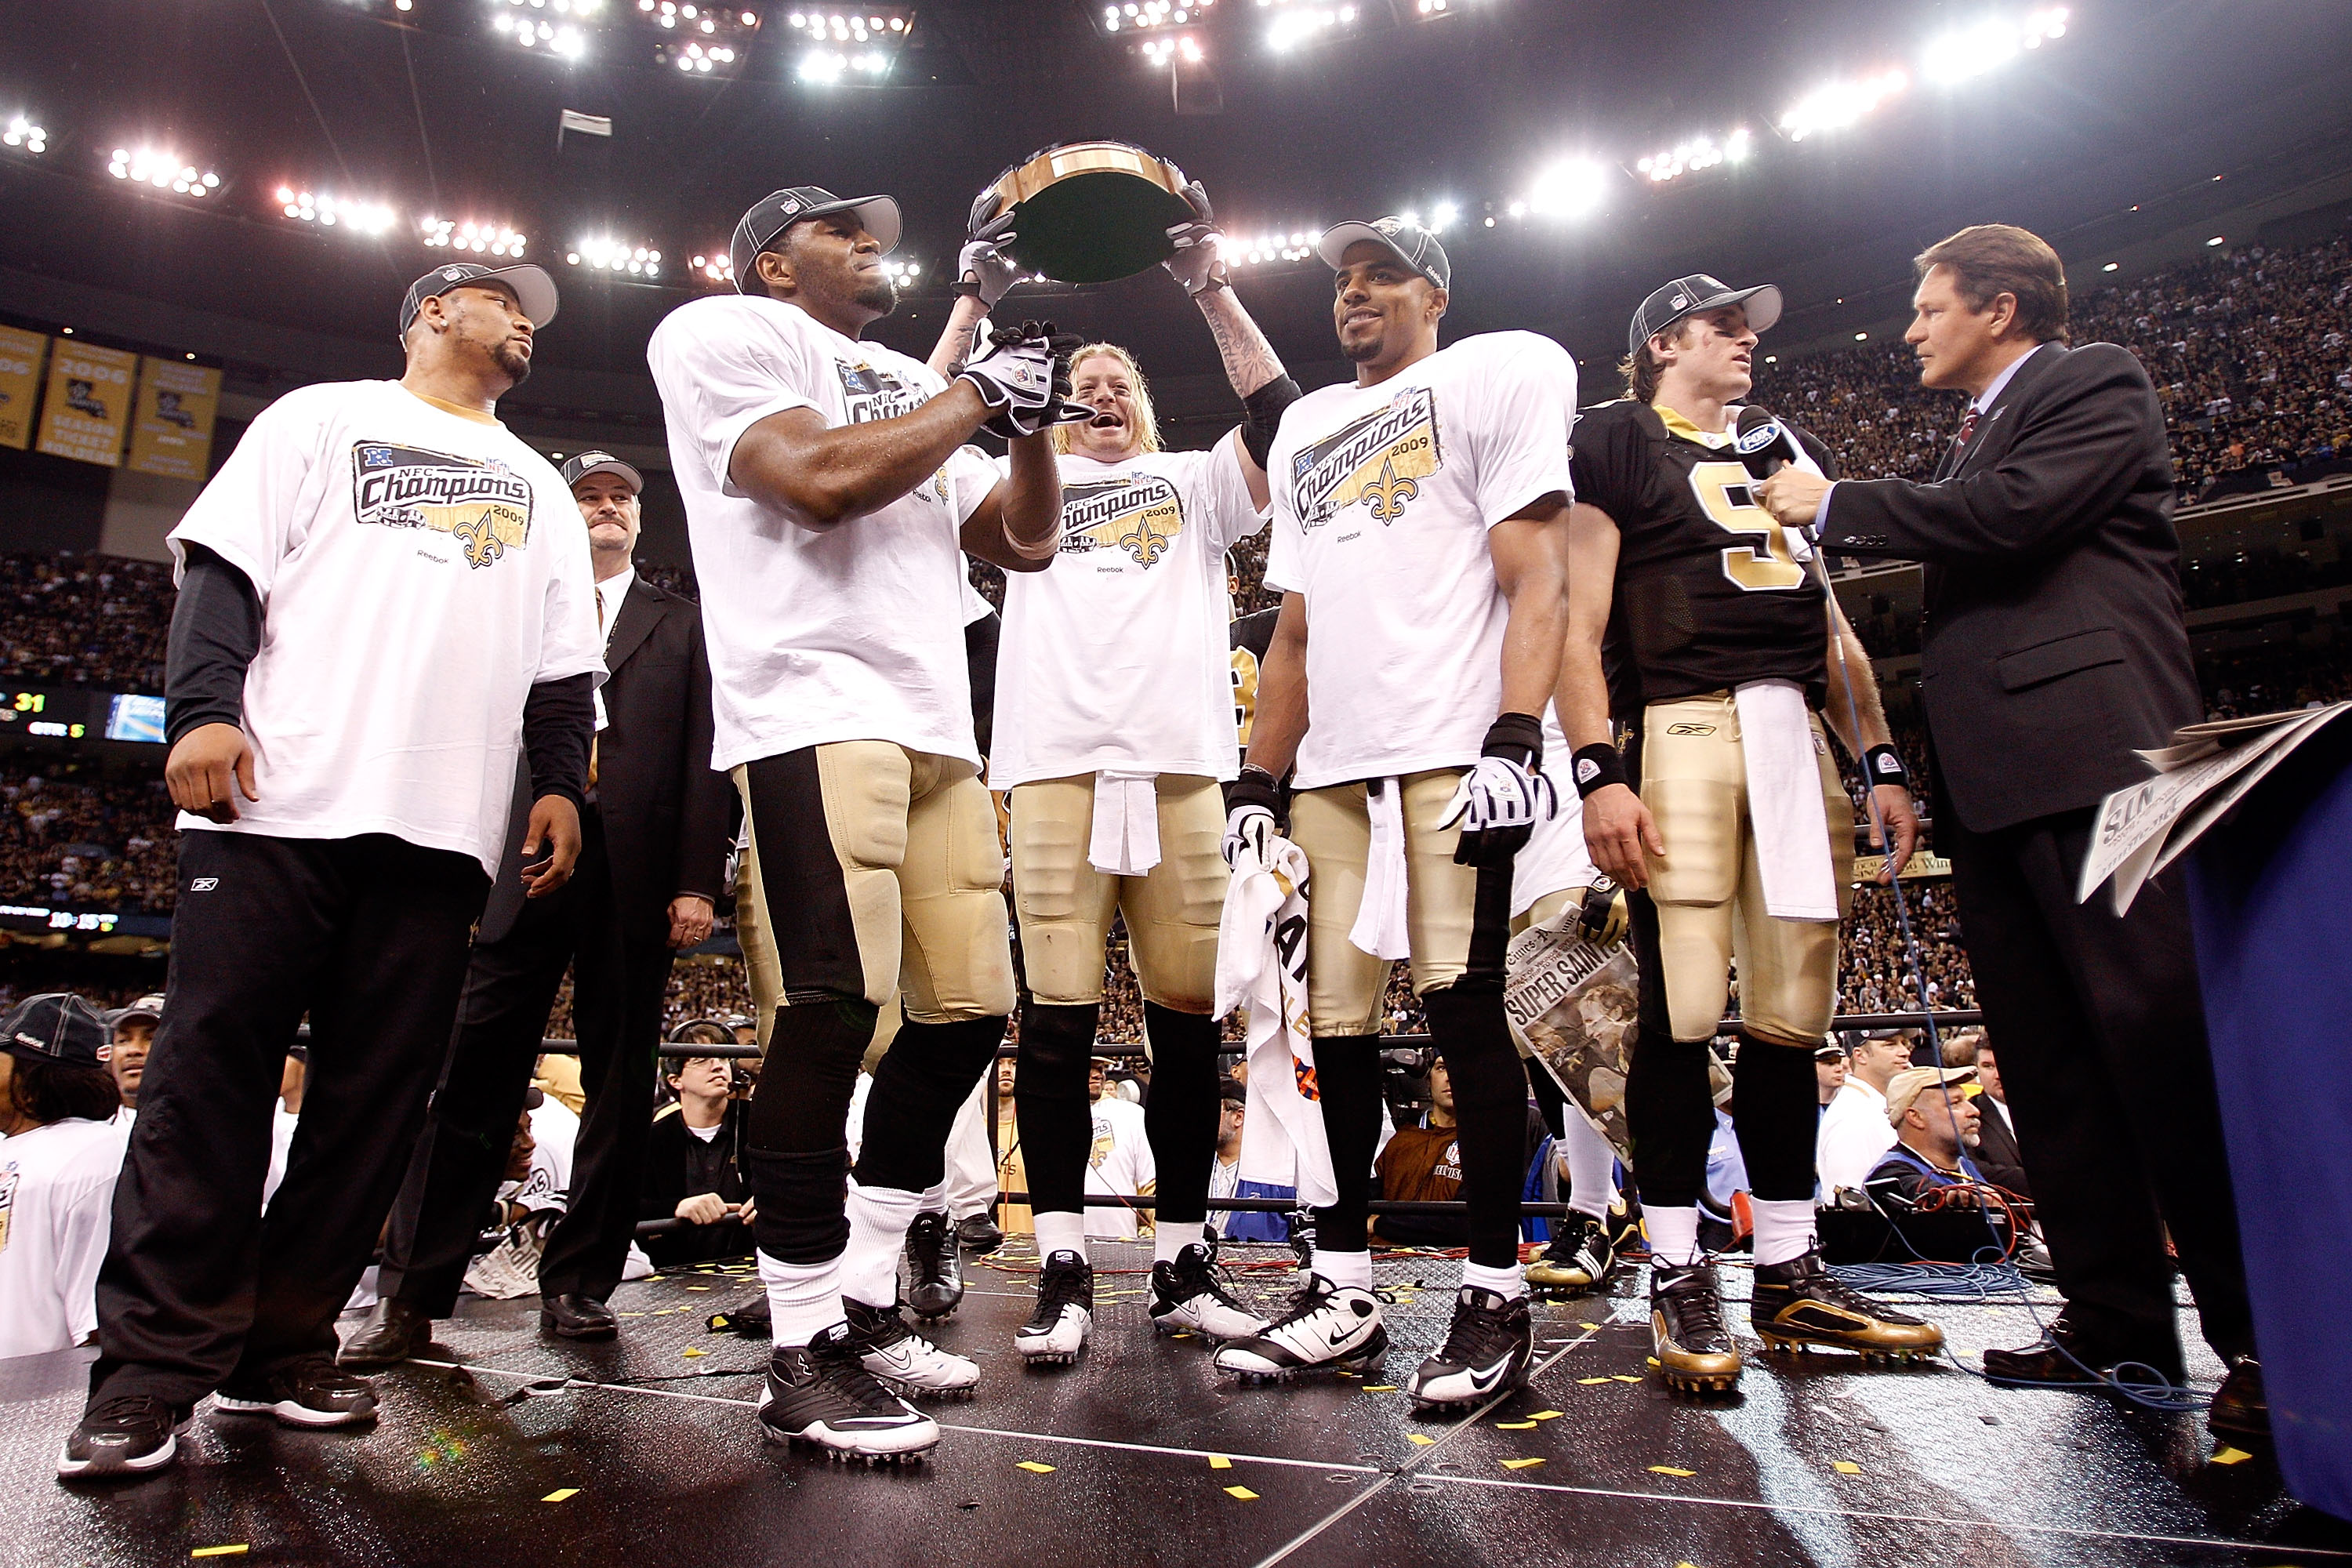 96149232-nfc-championship-minnesota-vikings-v-new-orleans-saints.jpg